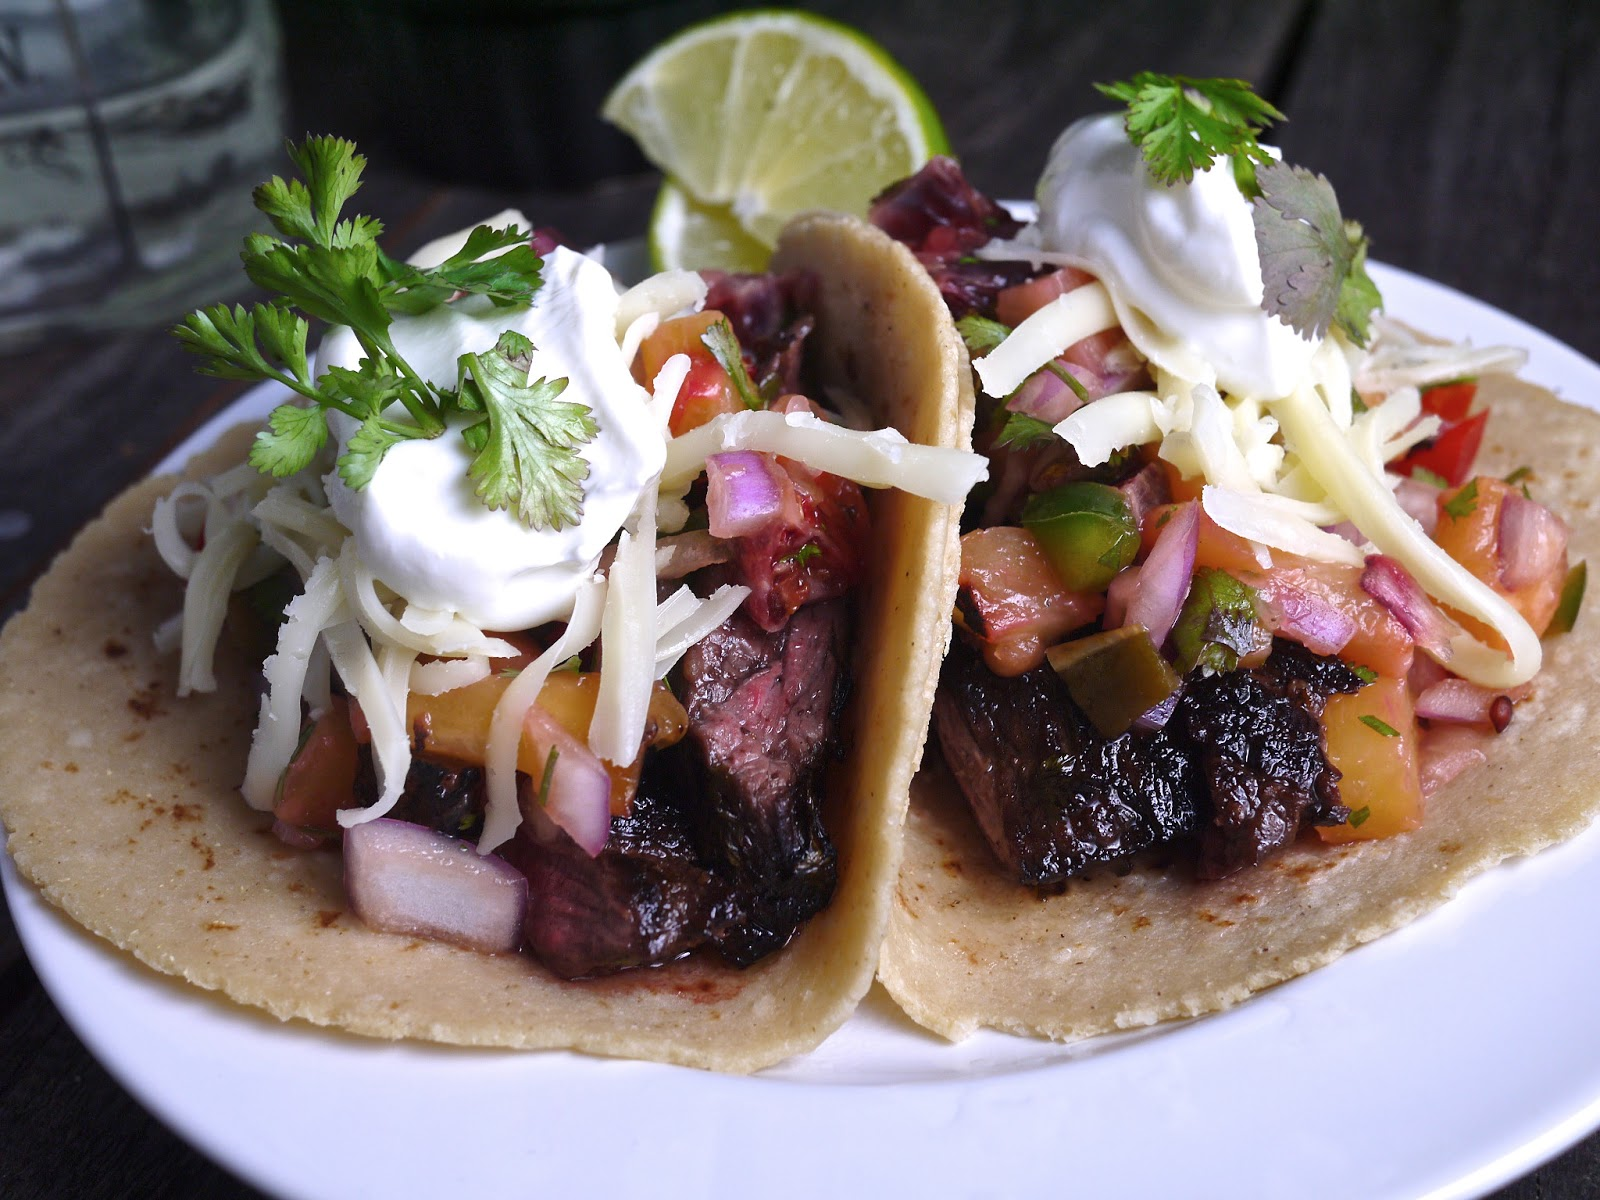 ... and Tequila Marinated Skirt Steak Tacos with Roasted Pineapple Salsa